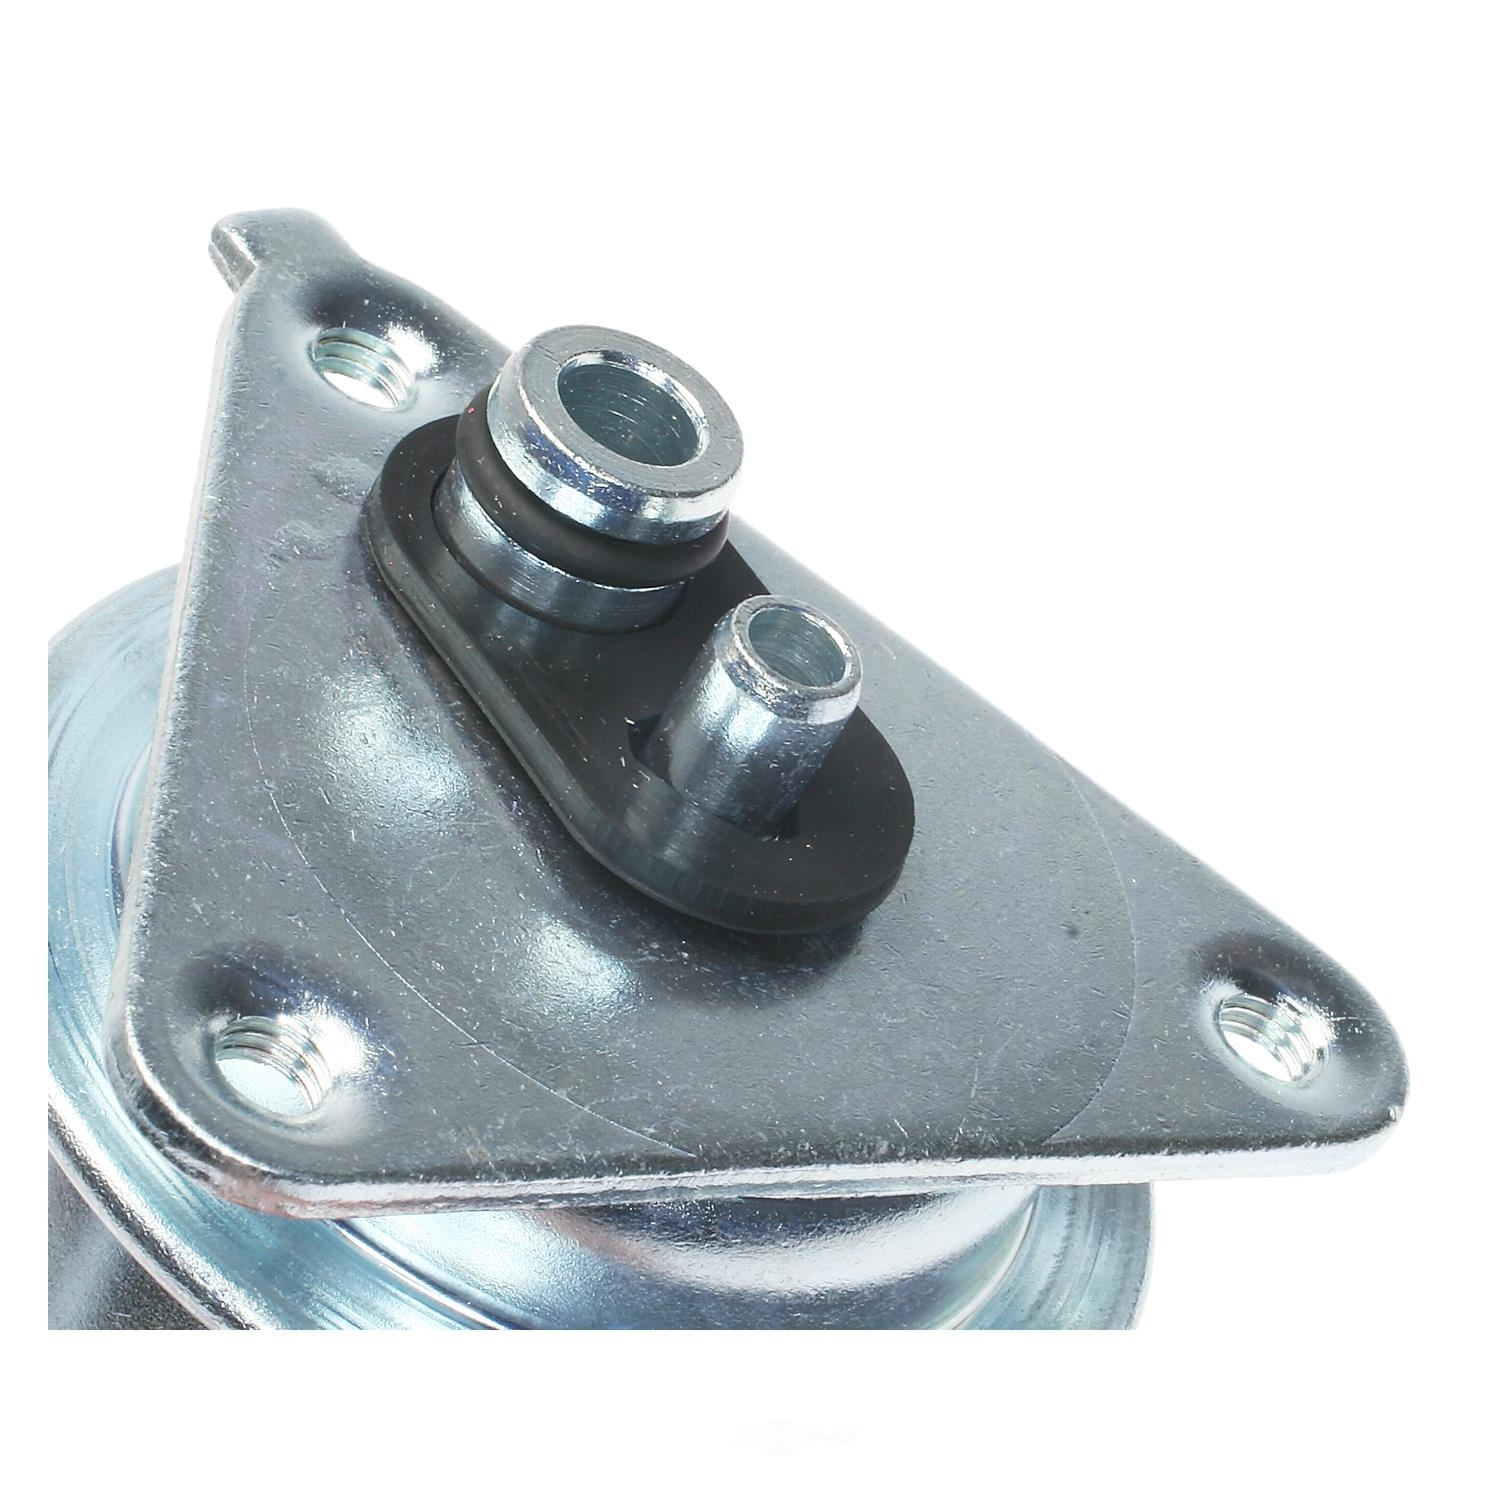 STANDARD T-SERIES - Fuel Injection Pressure Regulator - STT PR15T